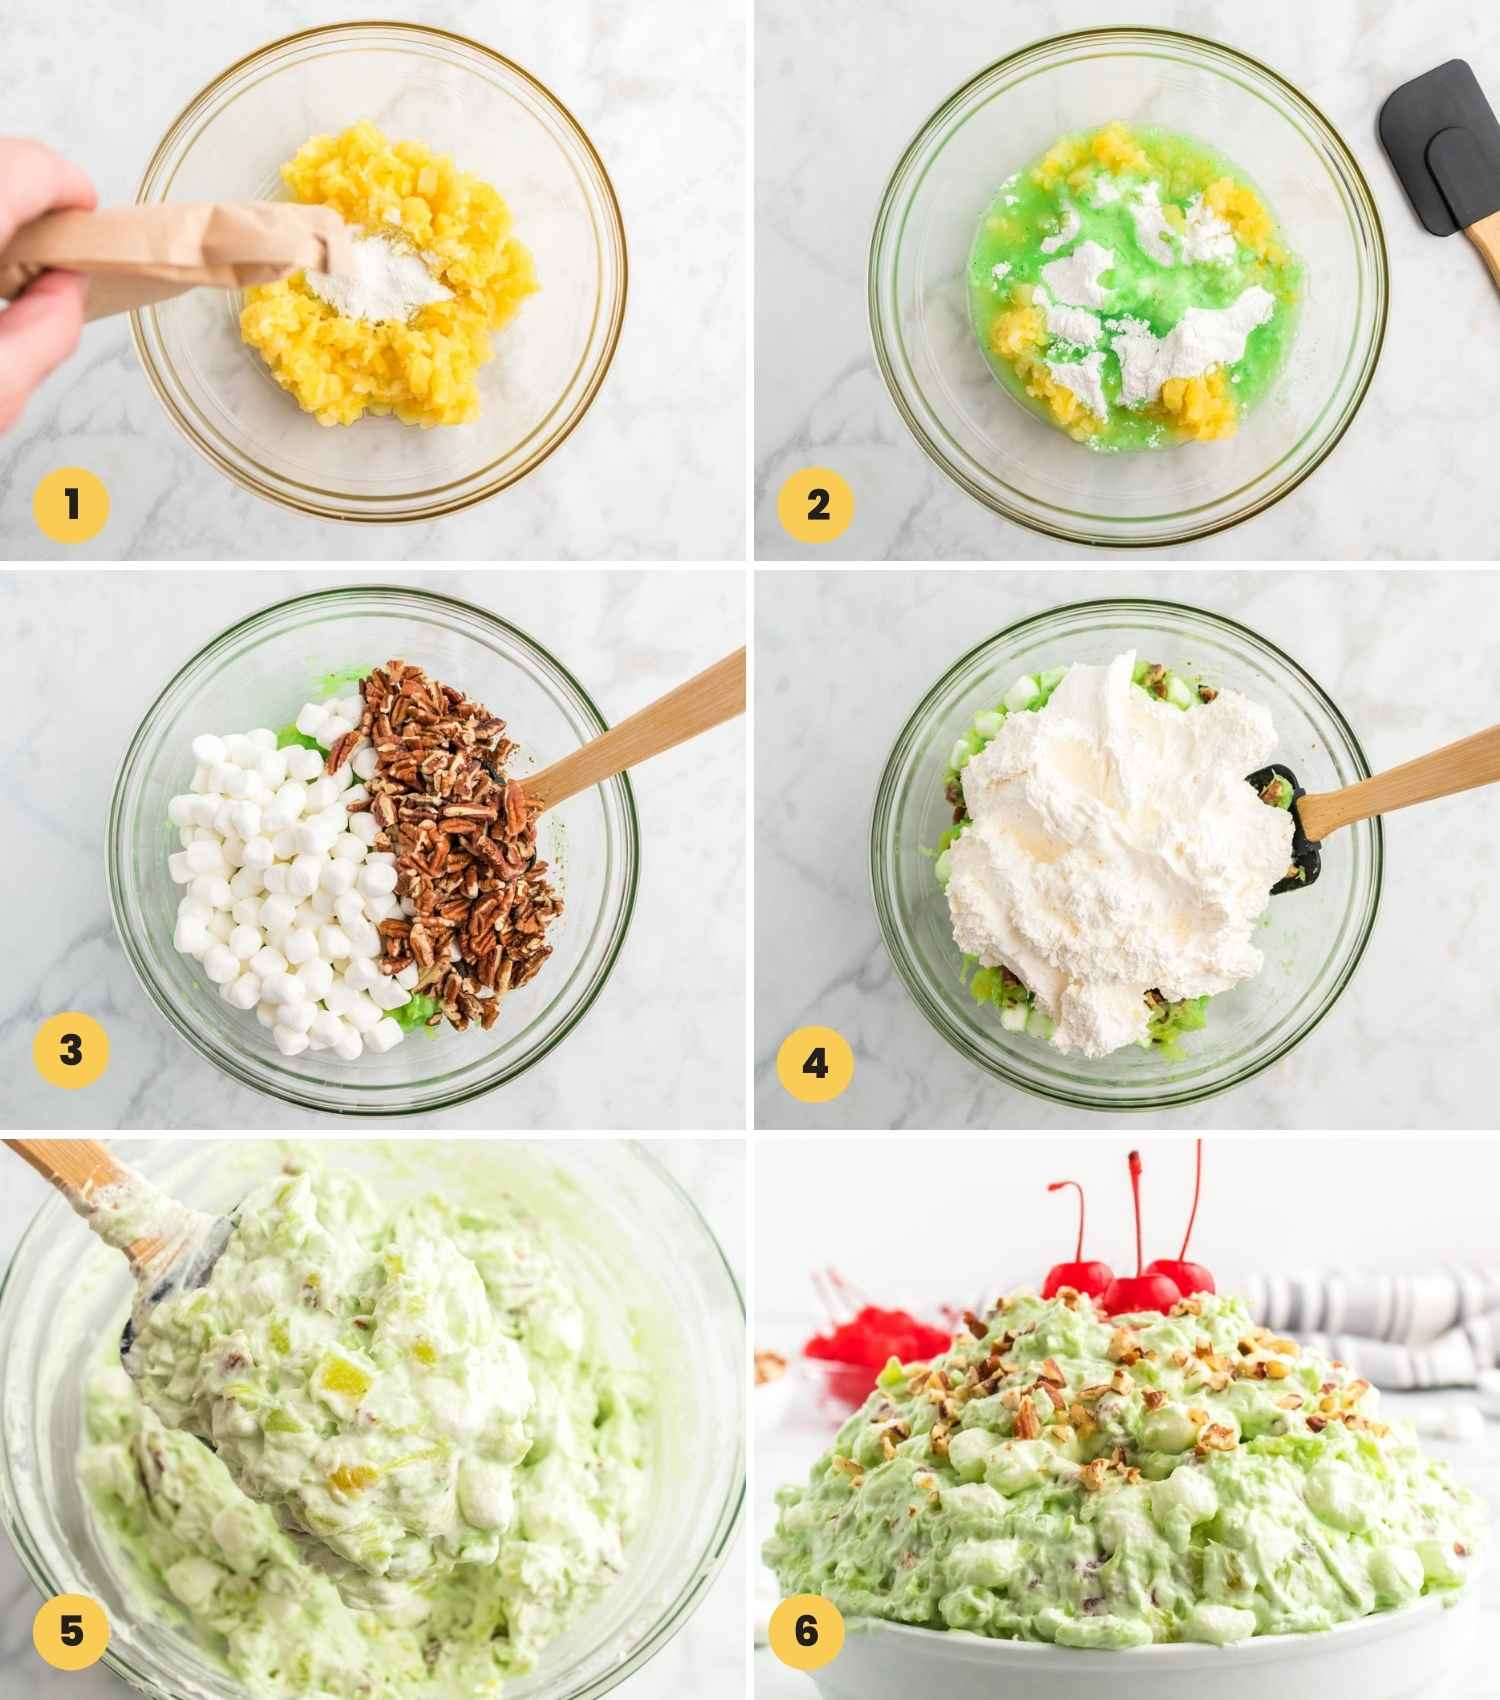 Collage with 6 images showing how to make watergate pistachio pudding salad